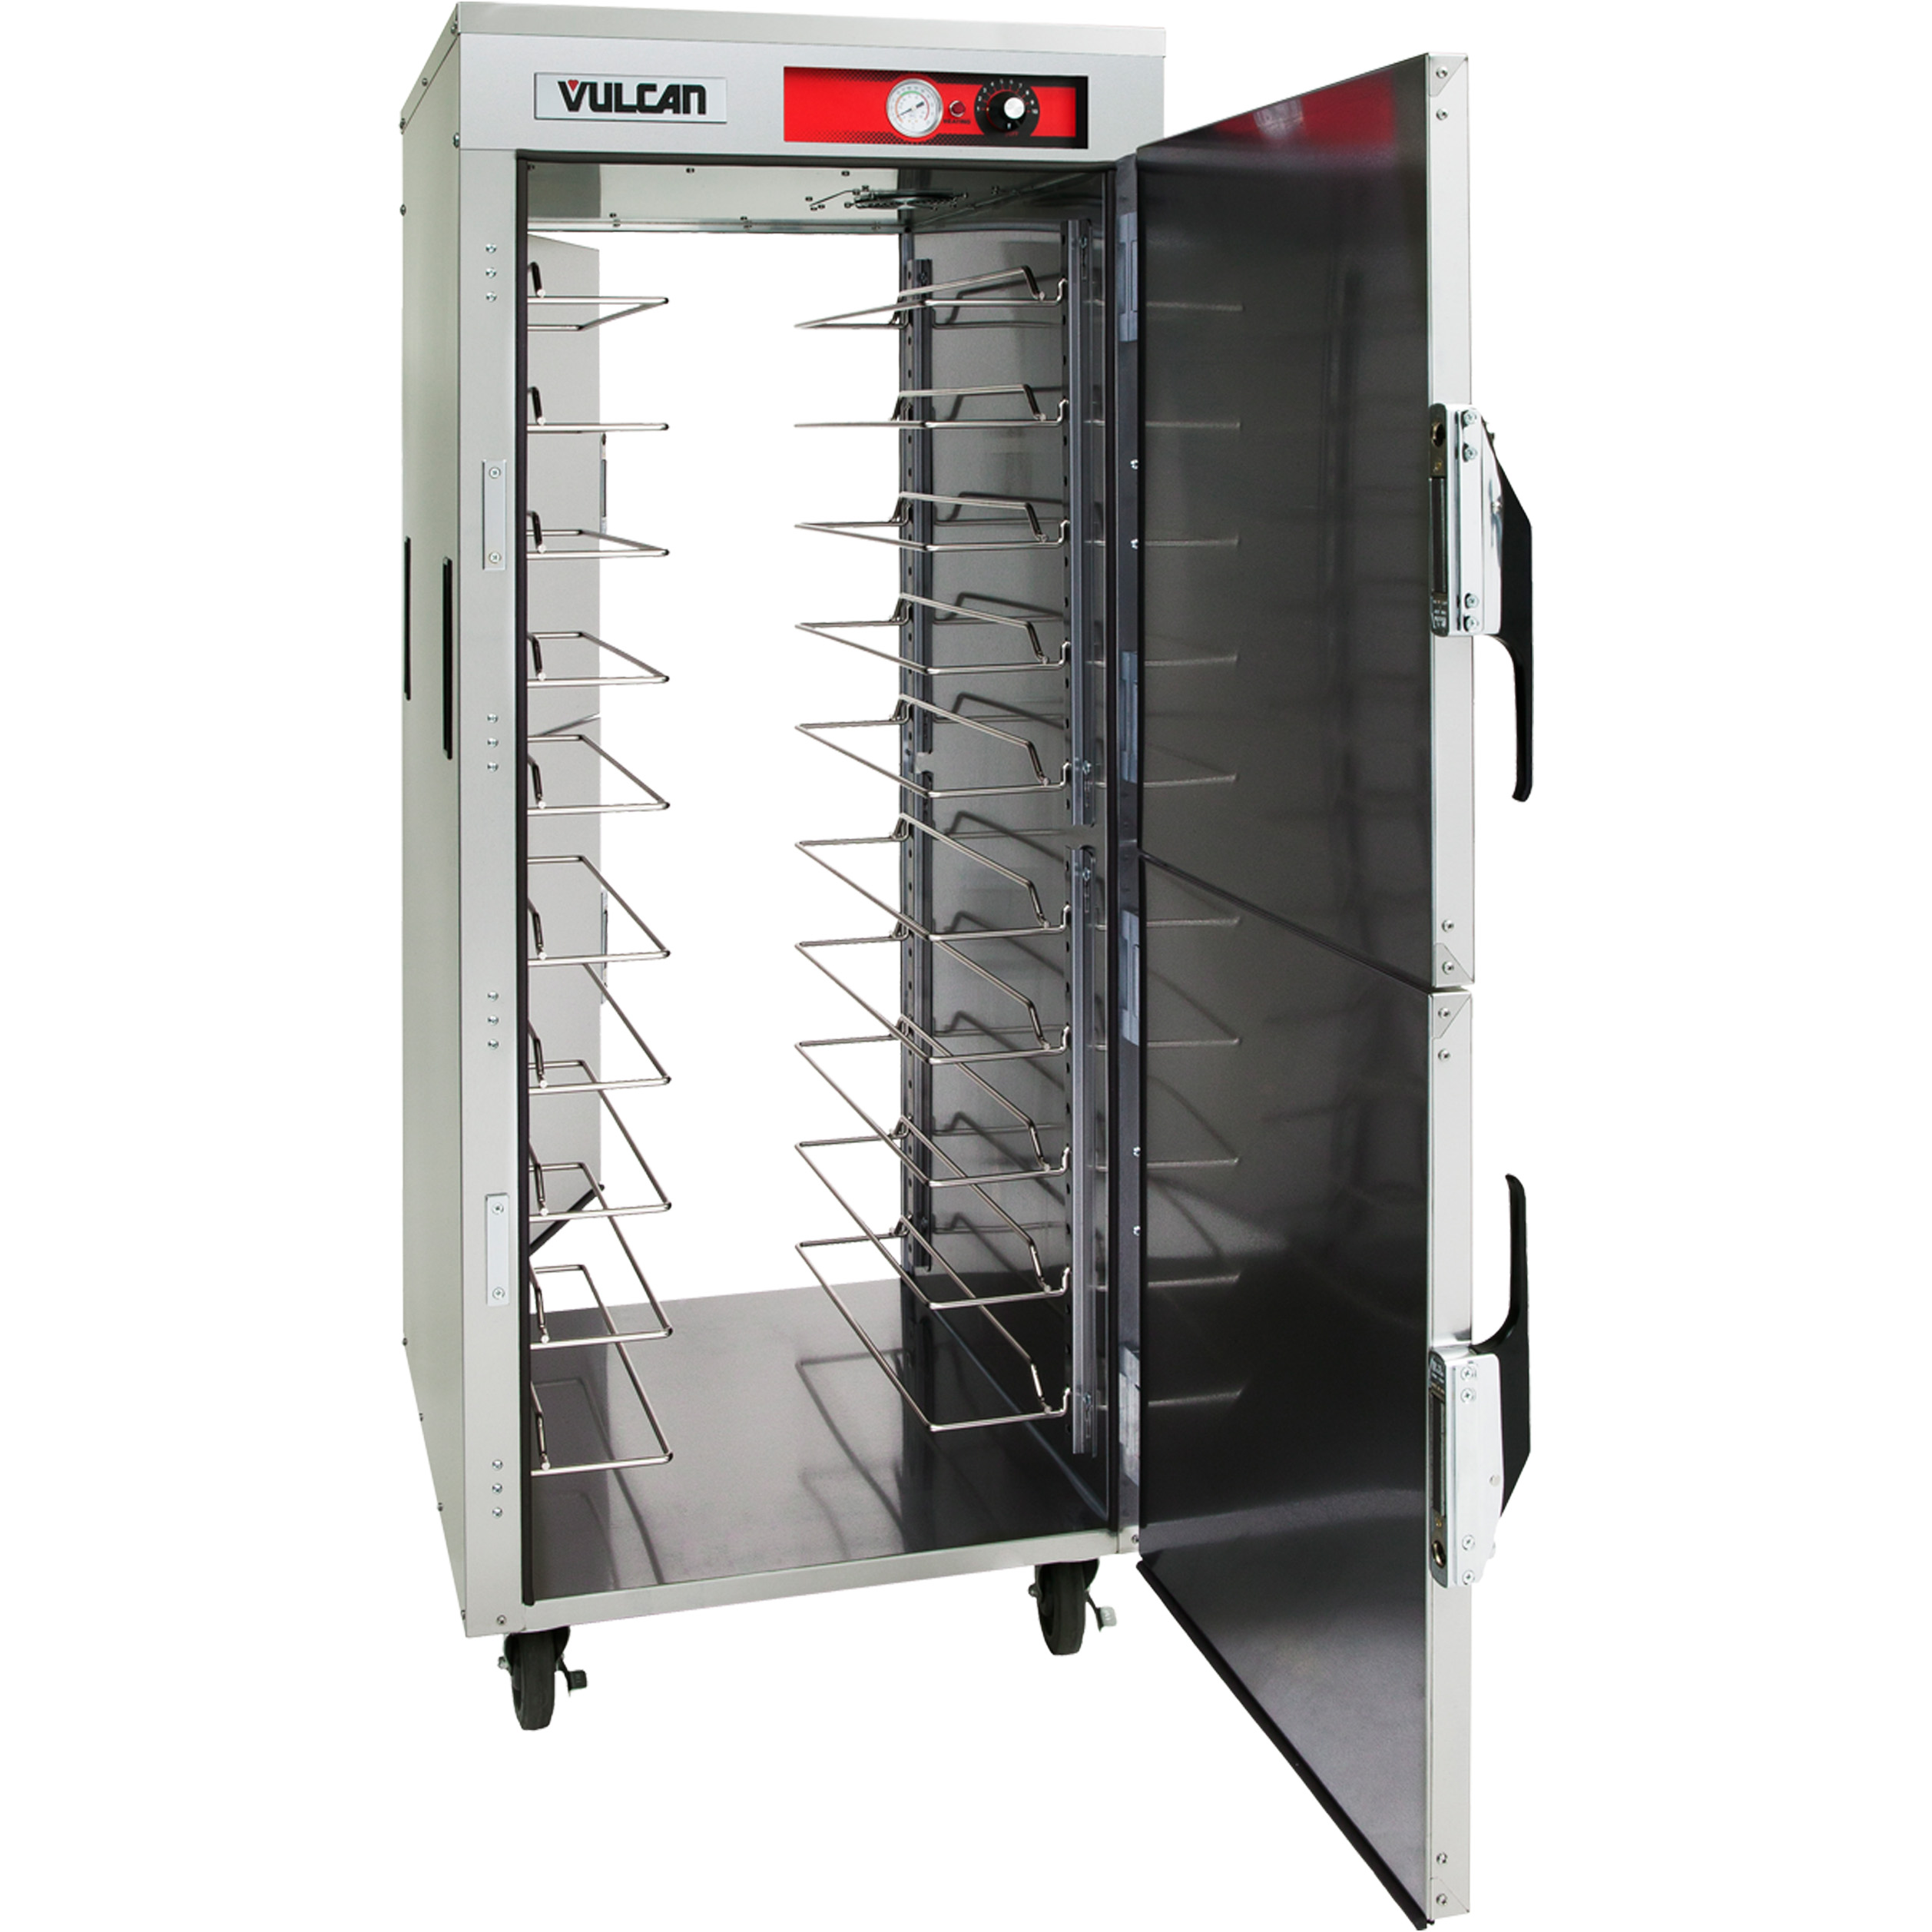 Vulcan VPT13 heated cabinet, mobile, pass-thru